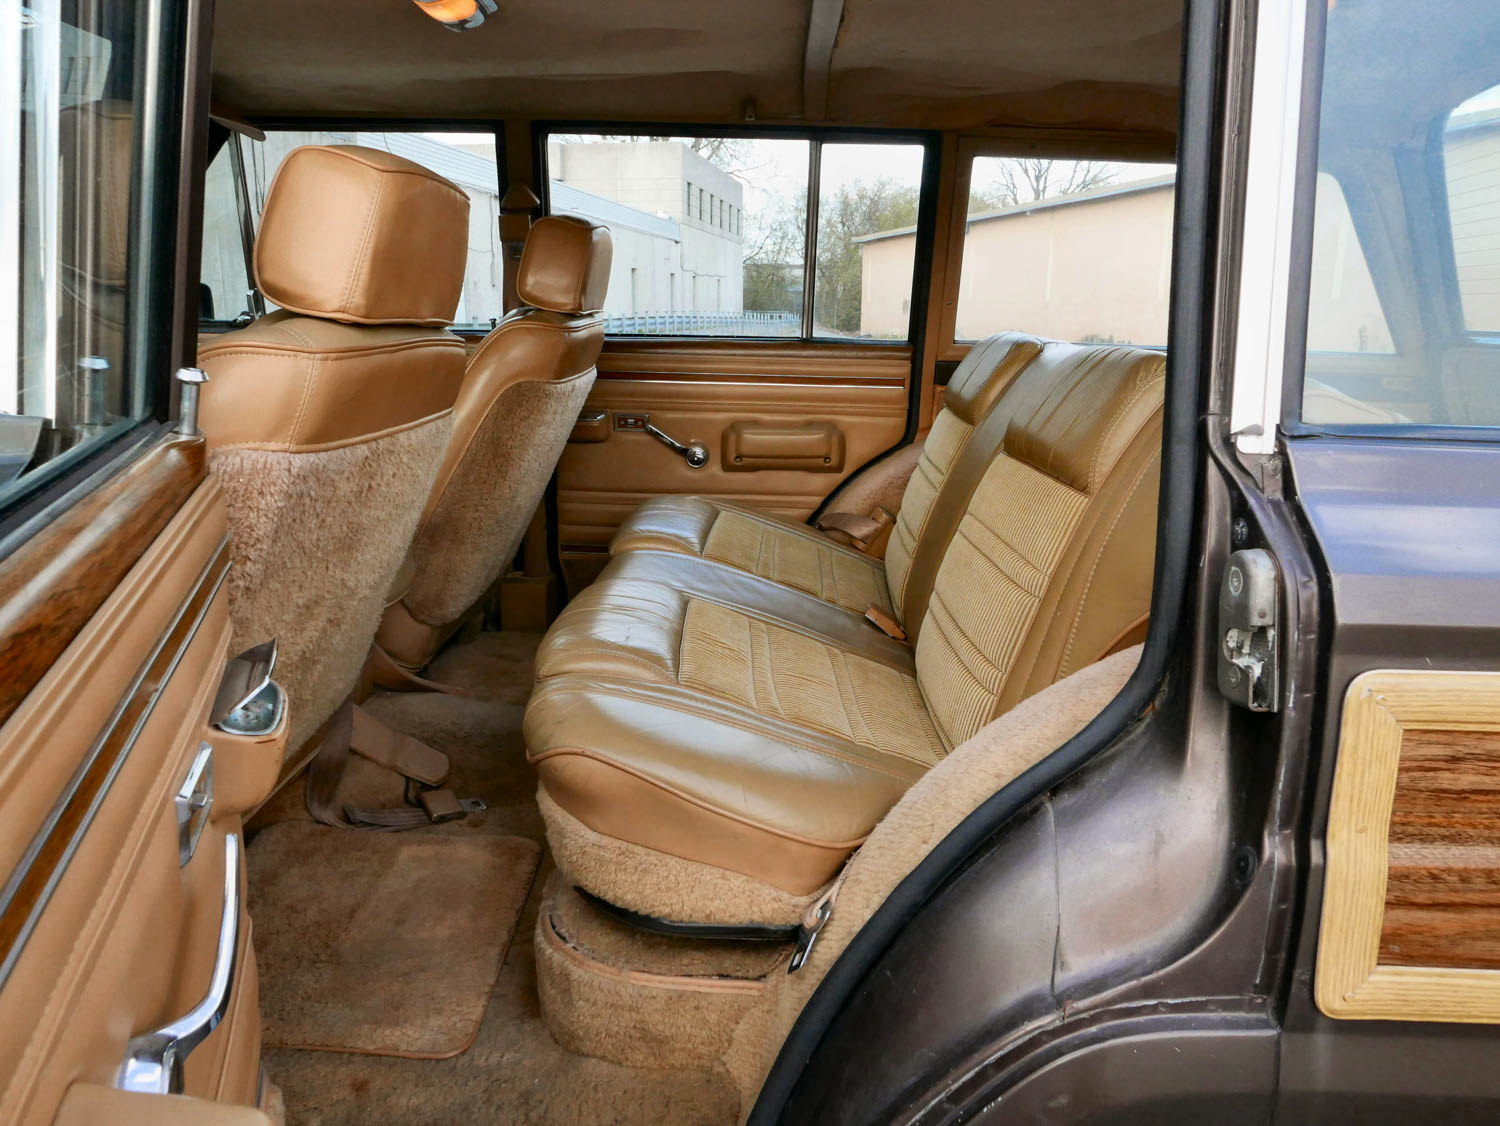 1987 Jeep Grand Wagoneer back seat